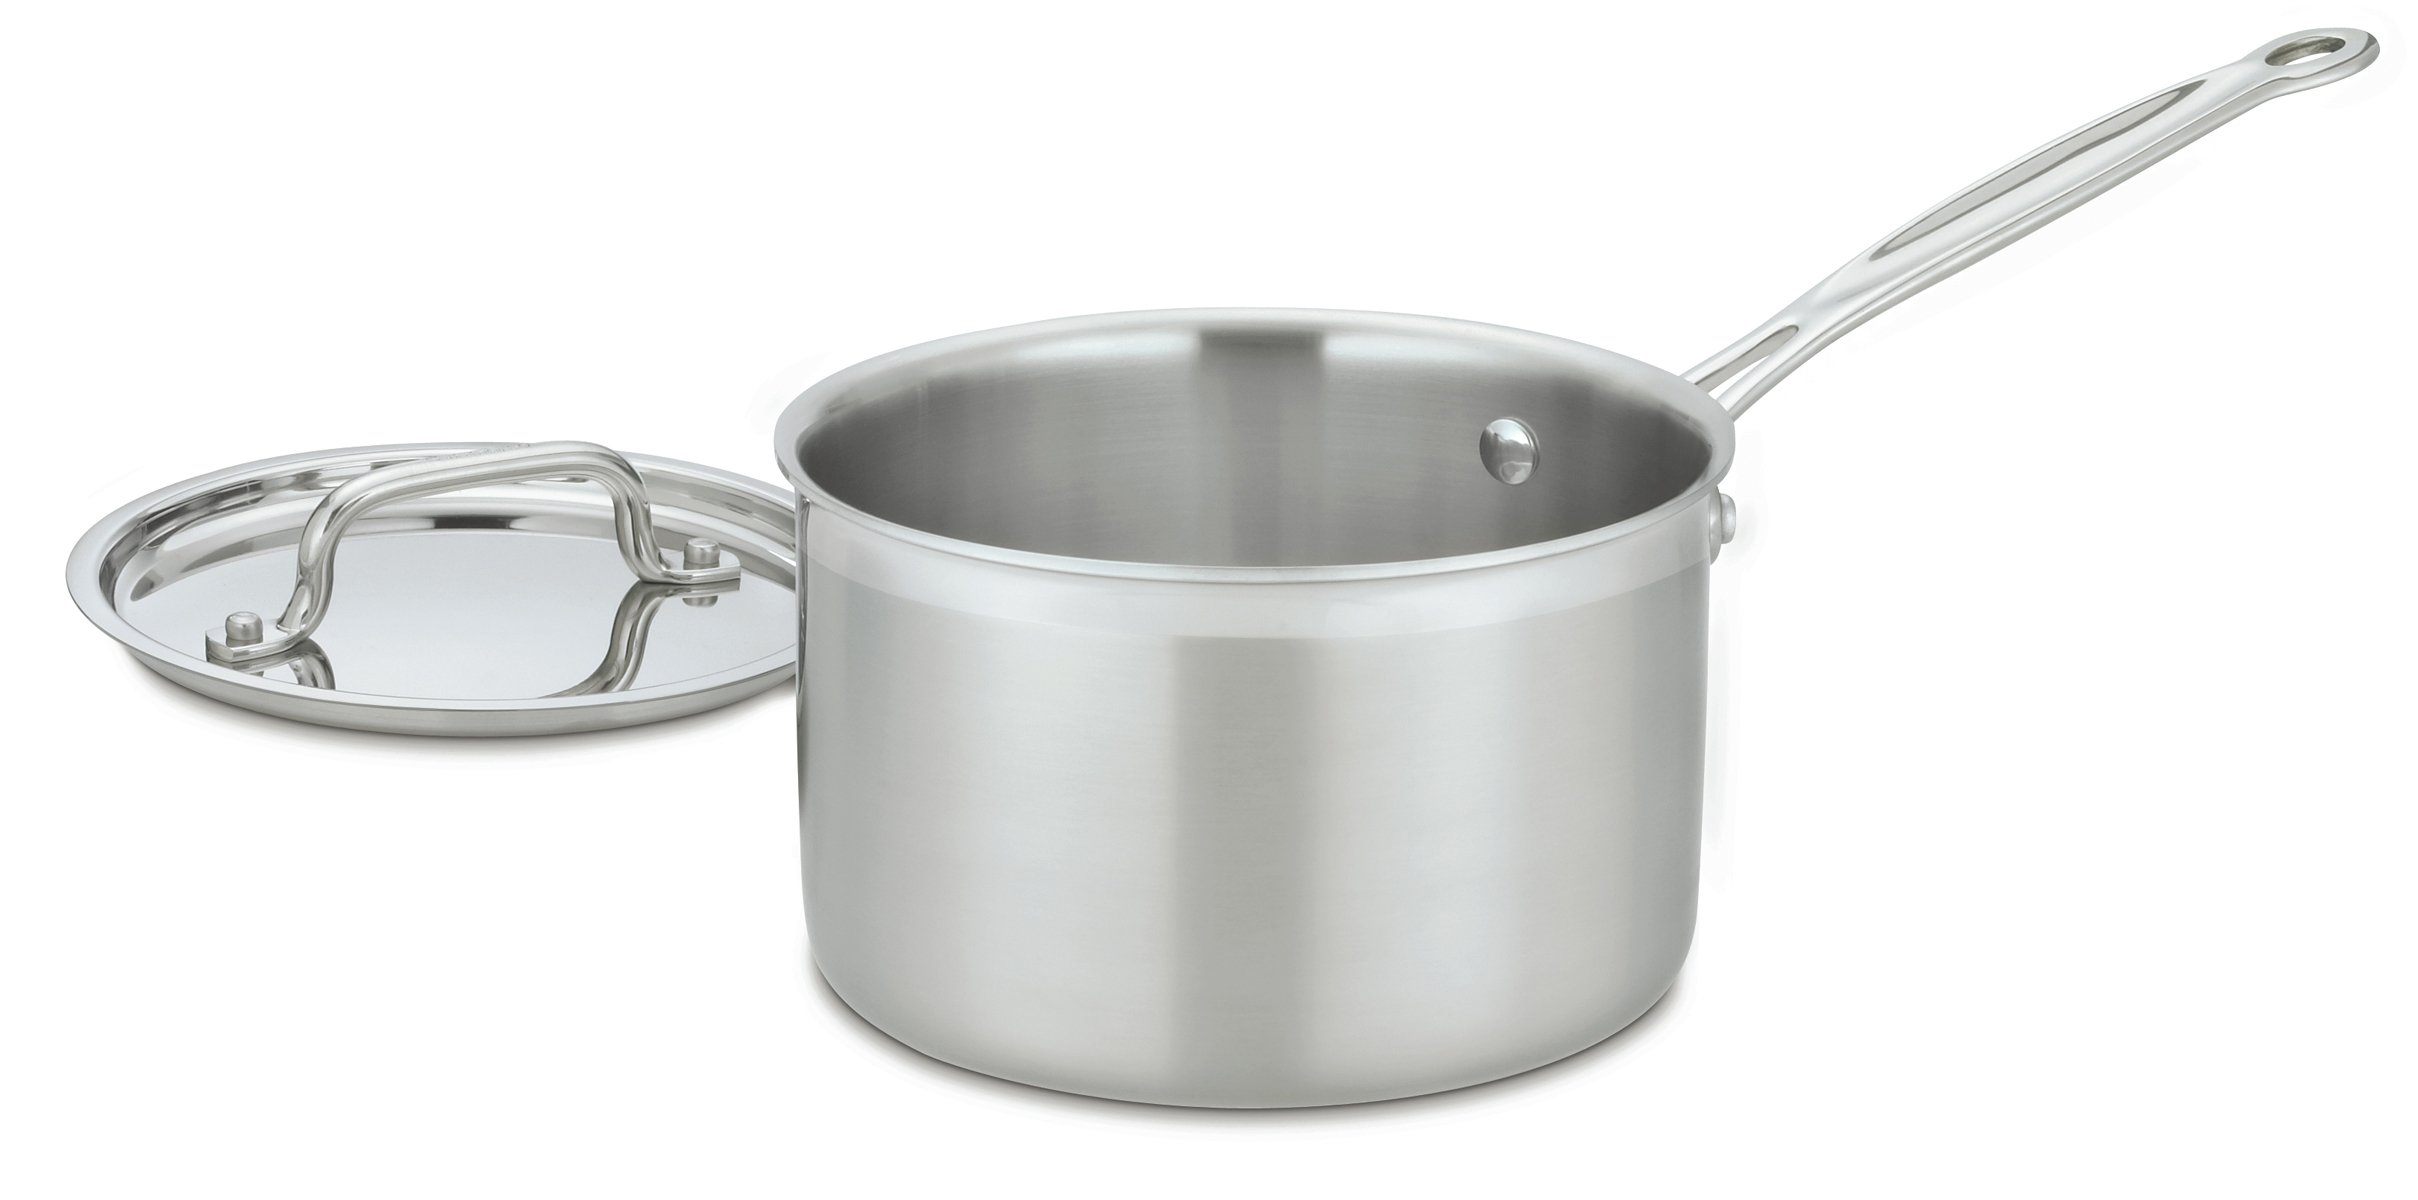 Cuisinart MCP194-20 MultiClad Pro Stainless-Steel 4-Quart Saucepan with Cover